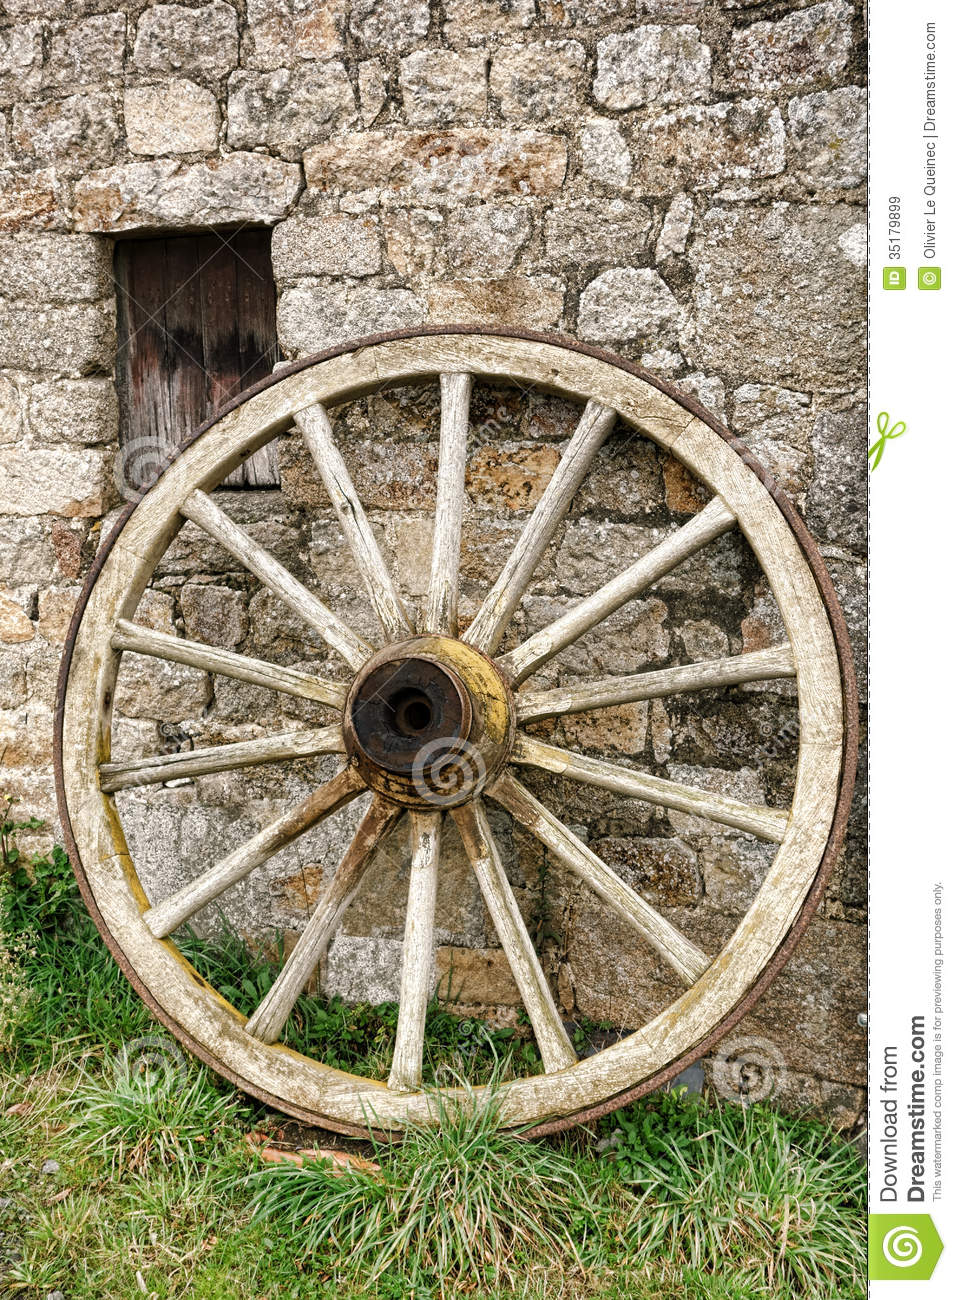 How To Build A Wooden Wagon Wheel